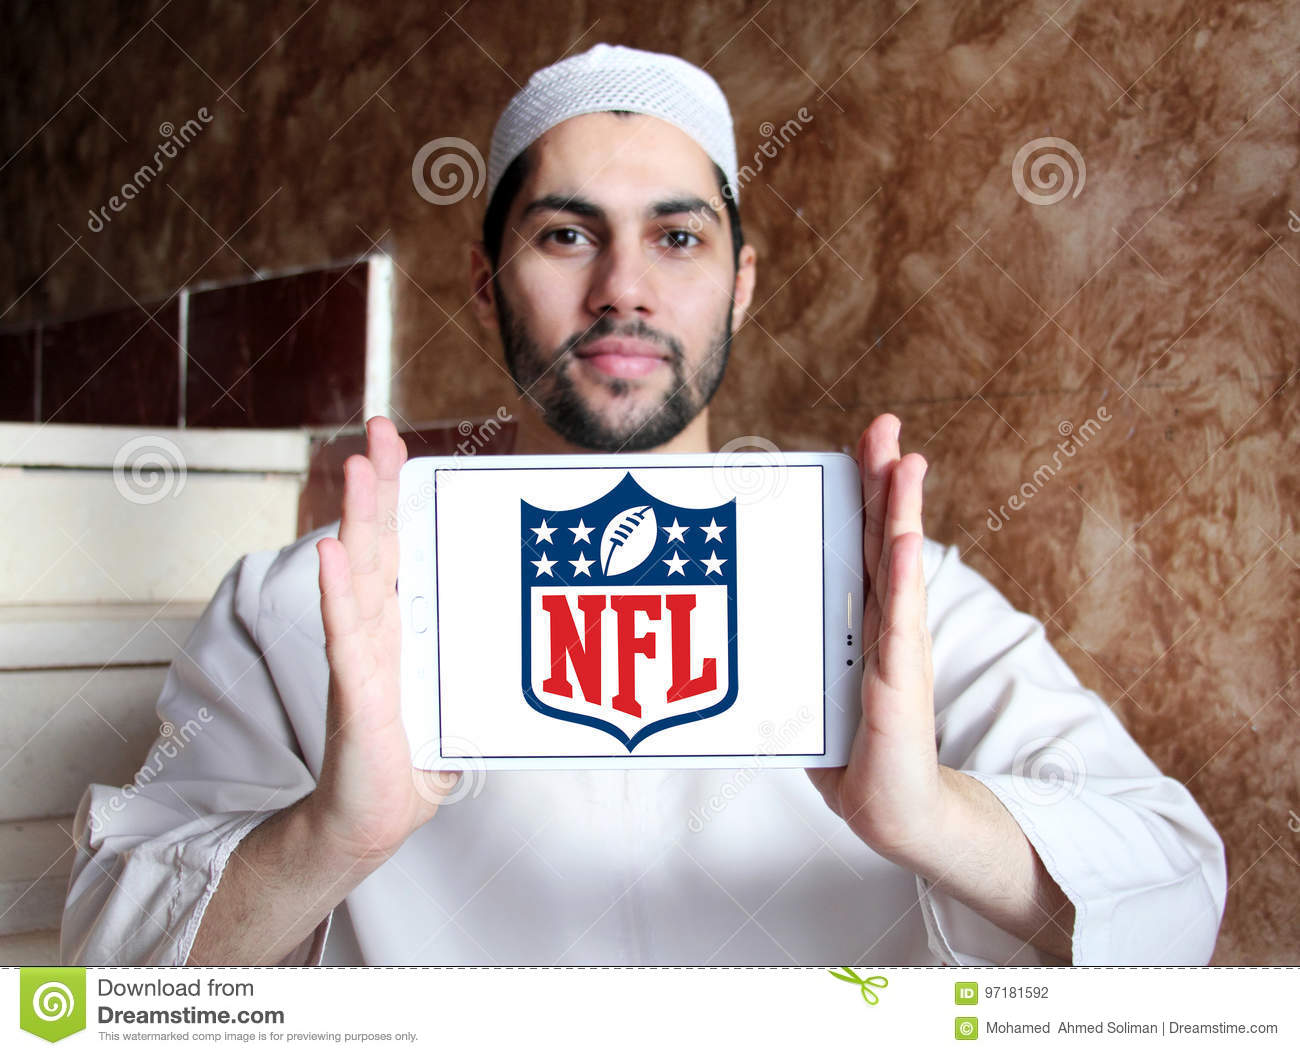 Nfl, logo de Ligue Nationale de Football Américain